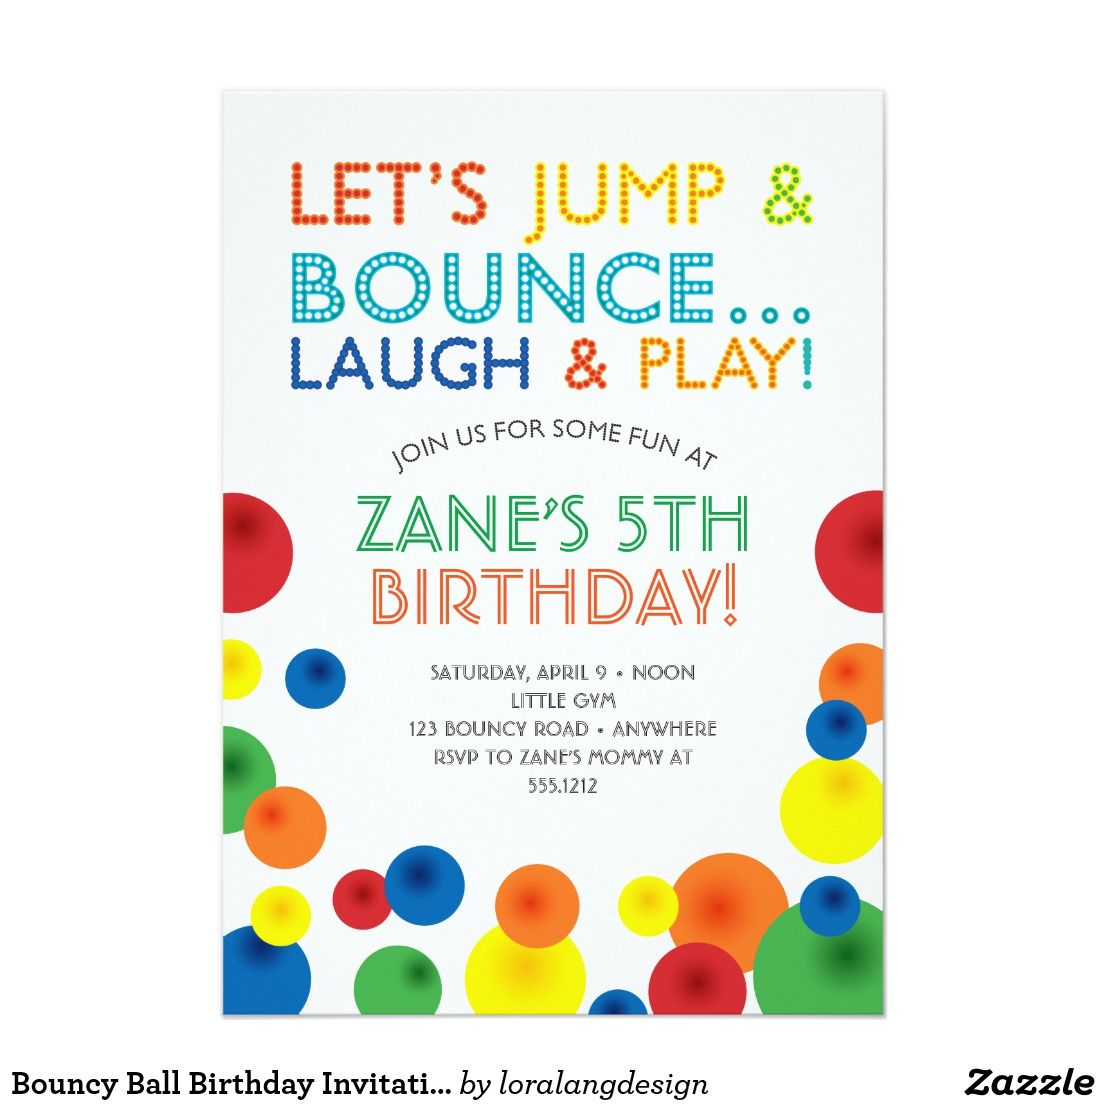 Bouncy Ball Birthday Invitation